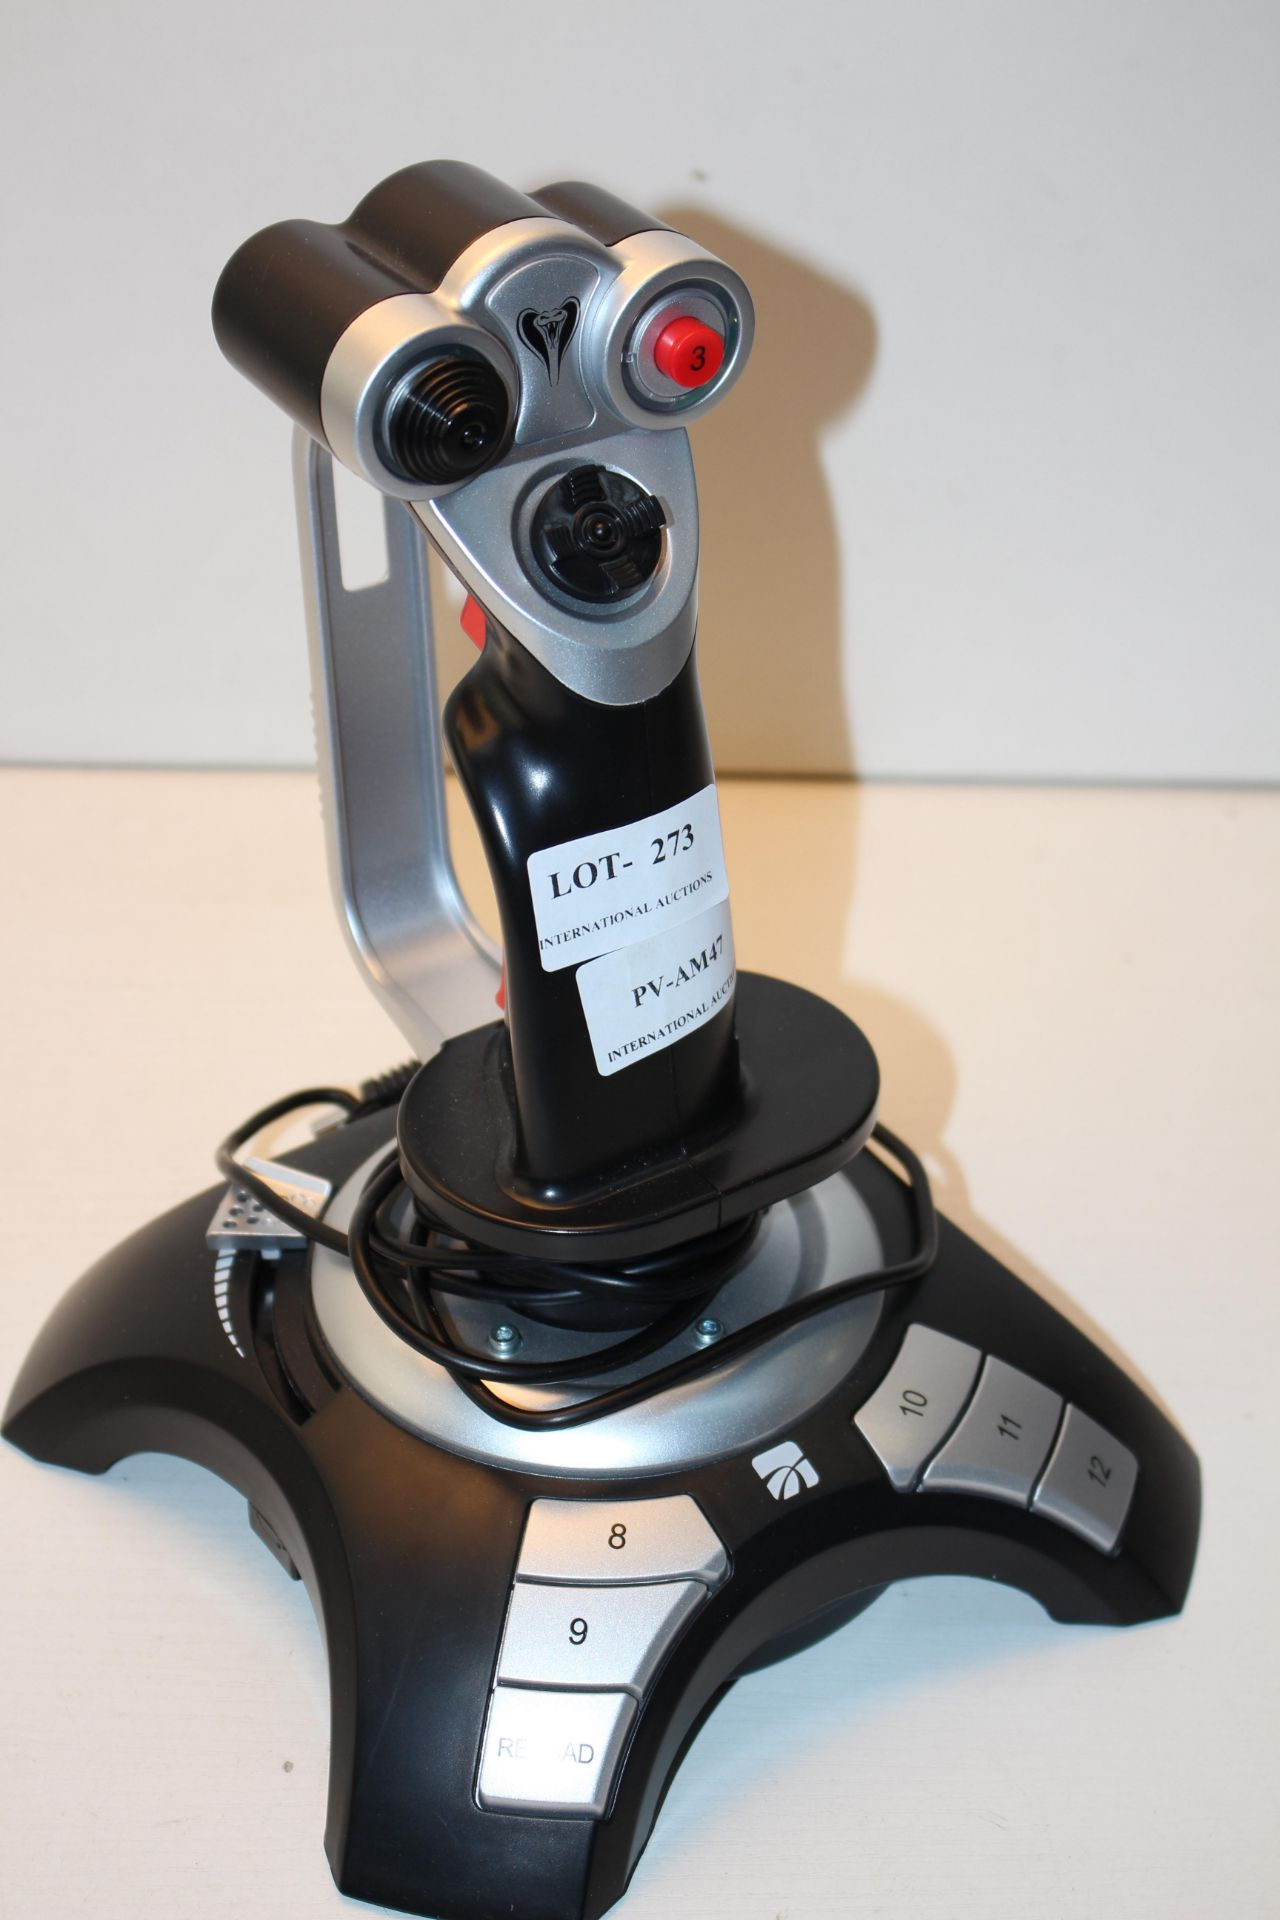 UNBOXED COBRA JOYSTICK Condition ReportAppraisal Available on Request- All Items are Unchecked/